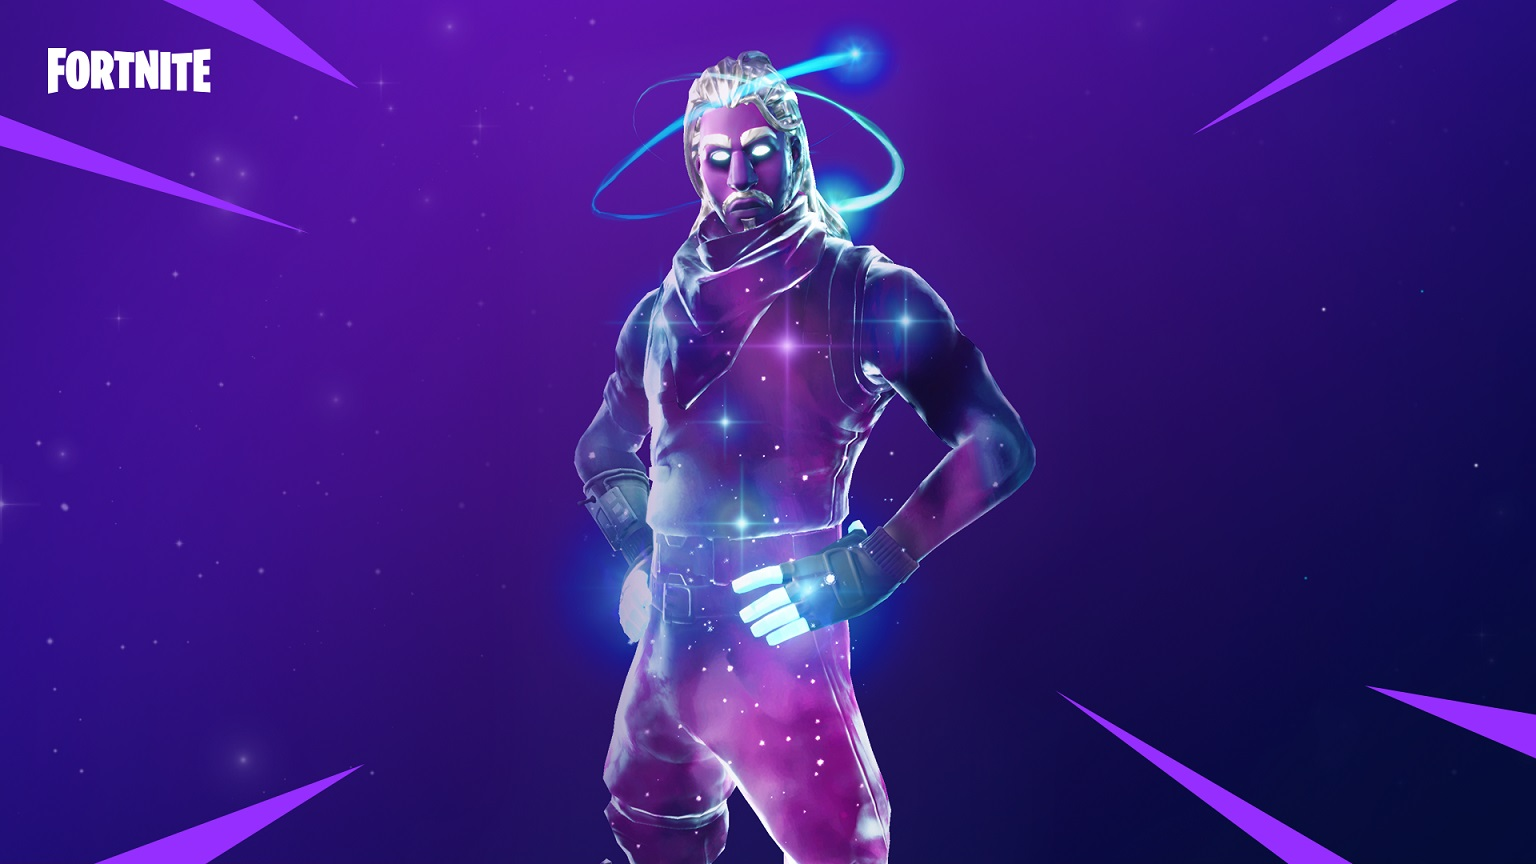 Fortnite_Samsung+Galaxyskin_Final_web.jp